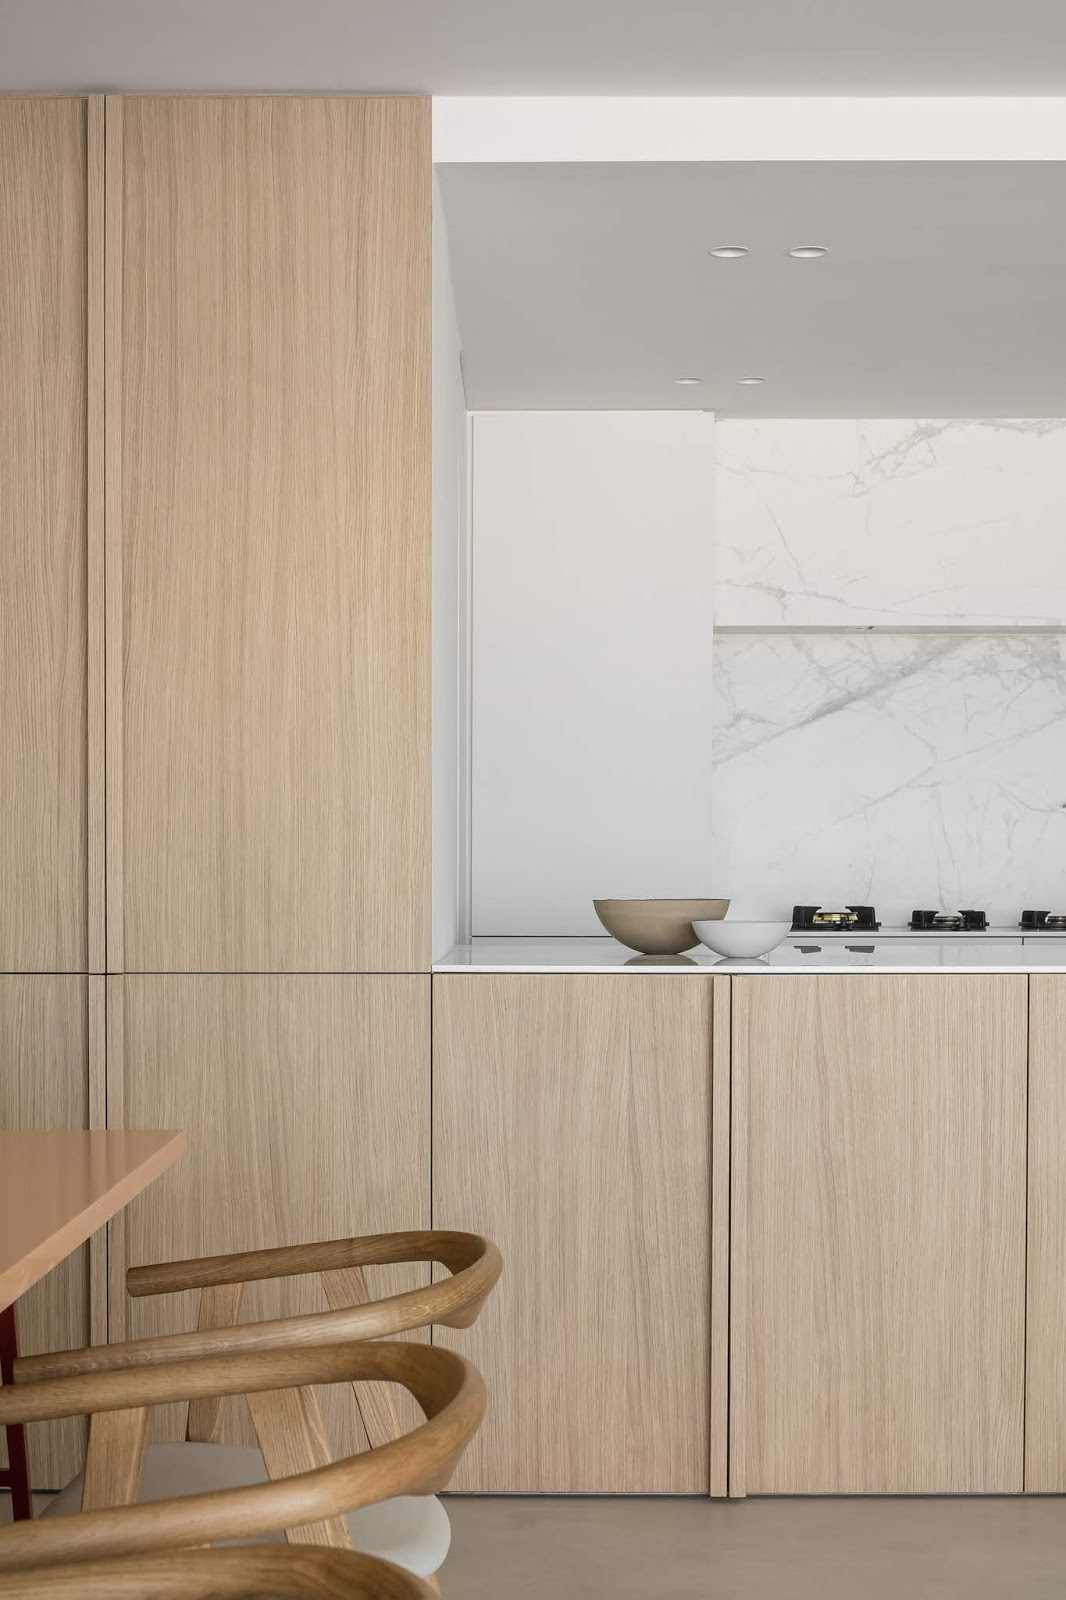 ilaria fatone - Elegance and Simplicity in a Minimal Home - kitchen